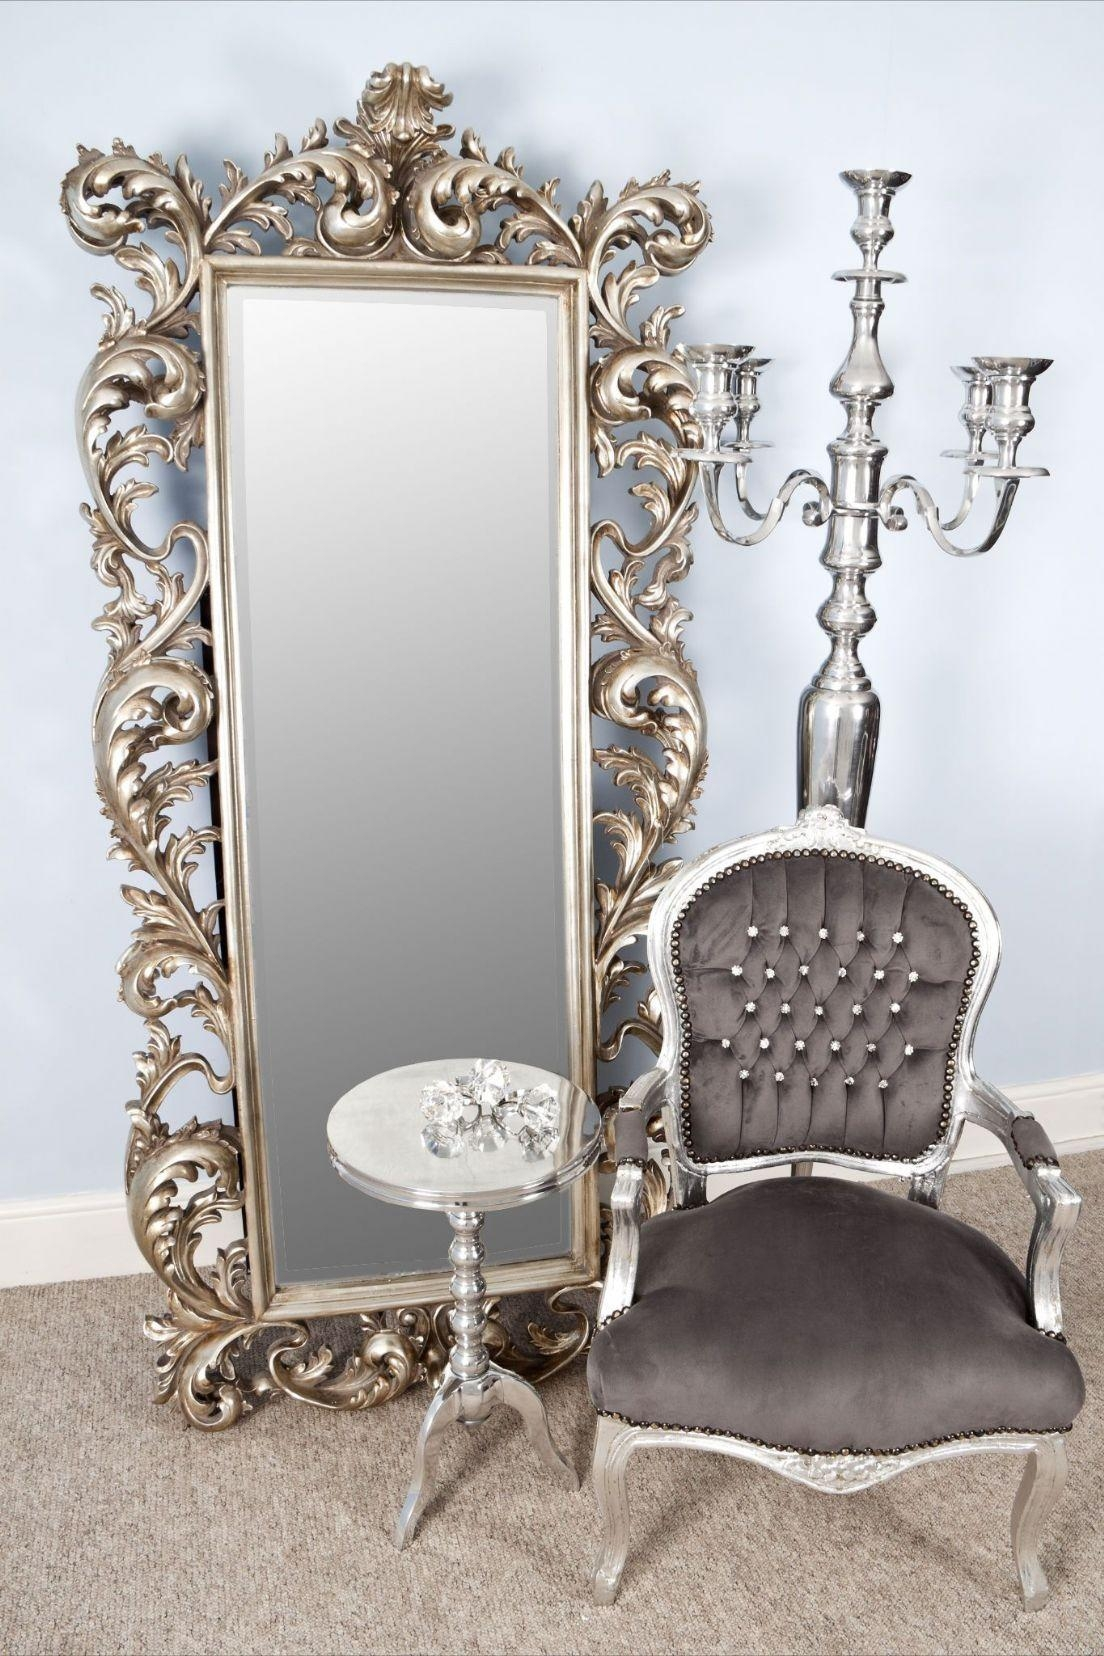 Nita Extra Large Silver Mirror 192 X 86 X 10 Cm Nita Silver Mirror Throughout Silver Antique Mirror (Image 15 of 20)